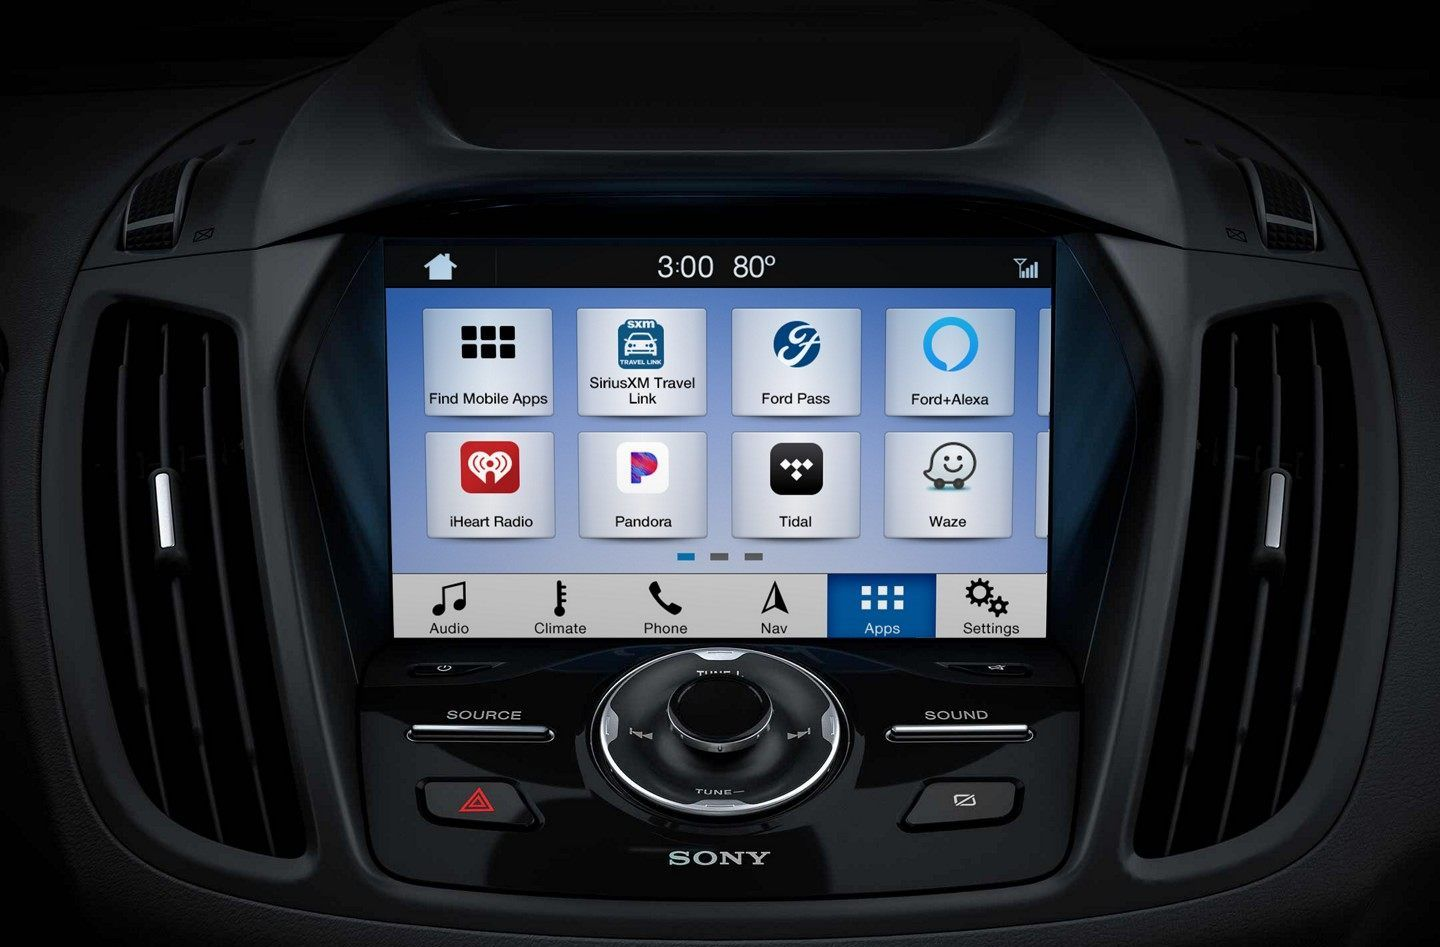 2019 Escape Infotainment Center